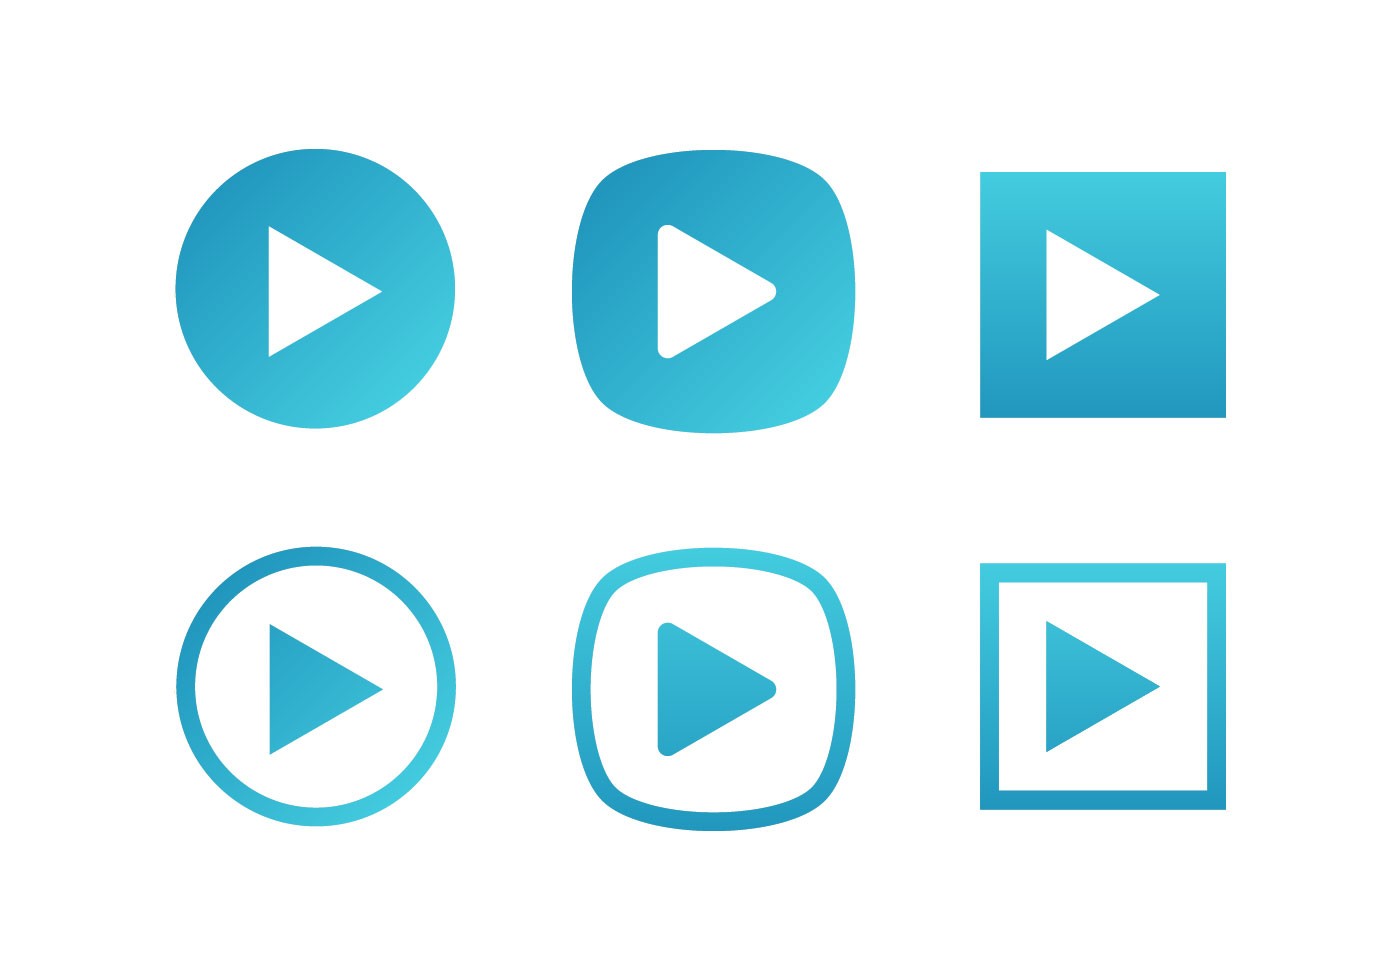 Blue Set Of Play Button Vector Icons Free - Download Free Vector Art, Stock Graphics & Images